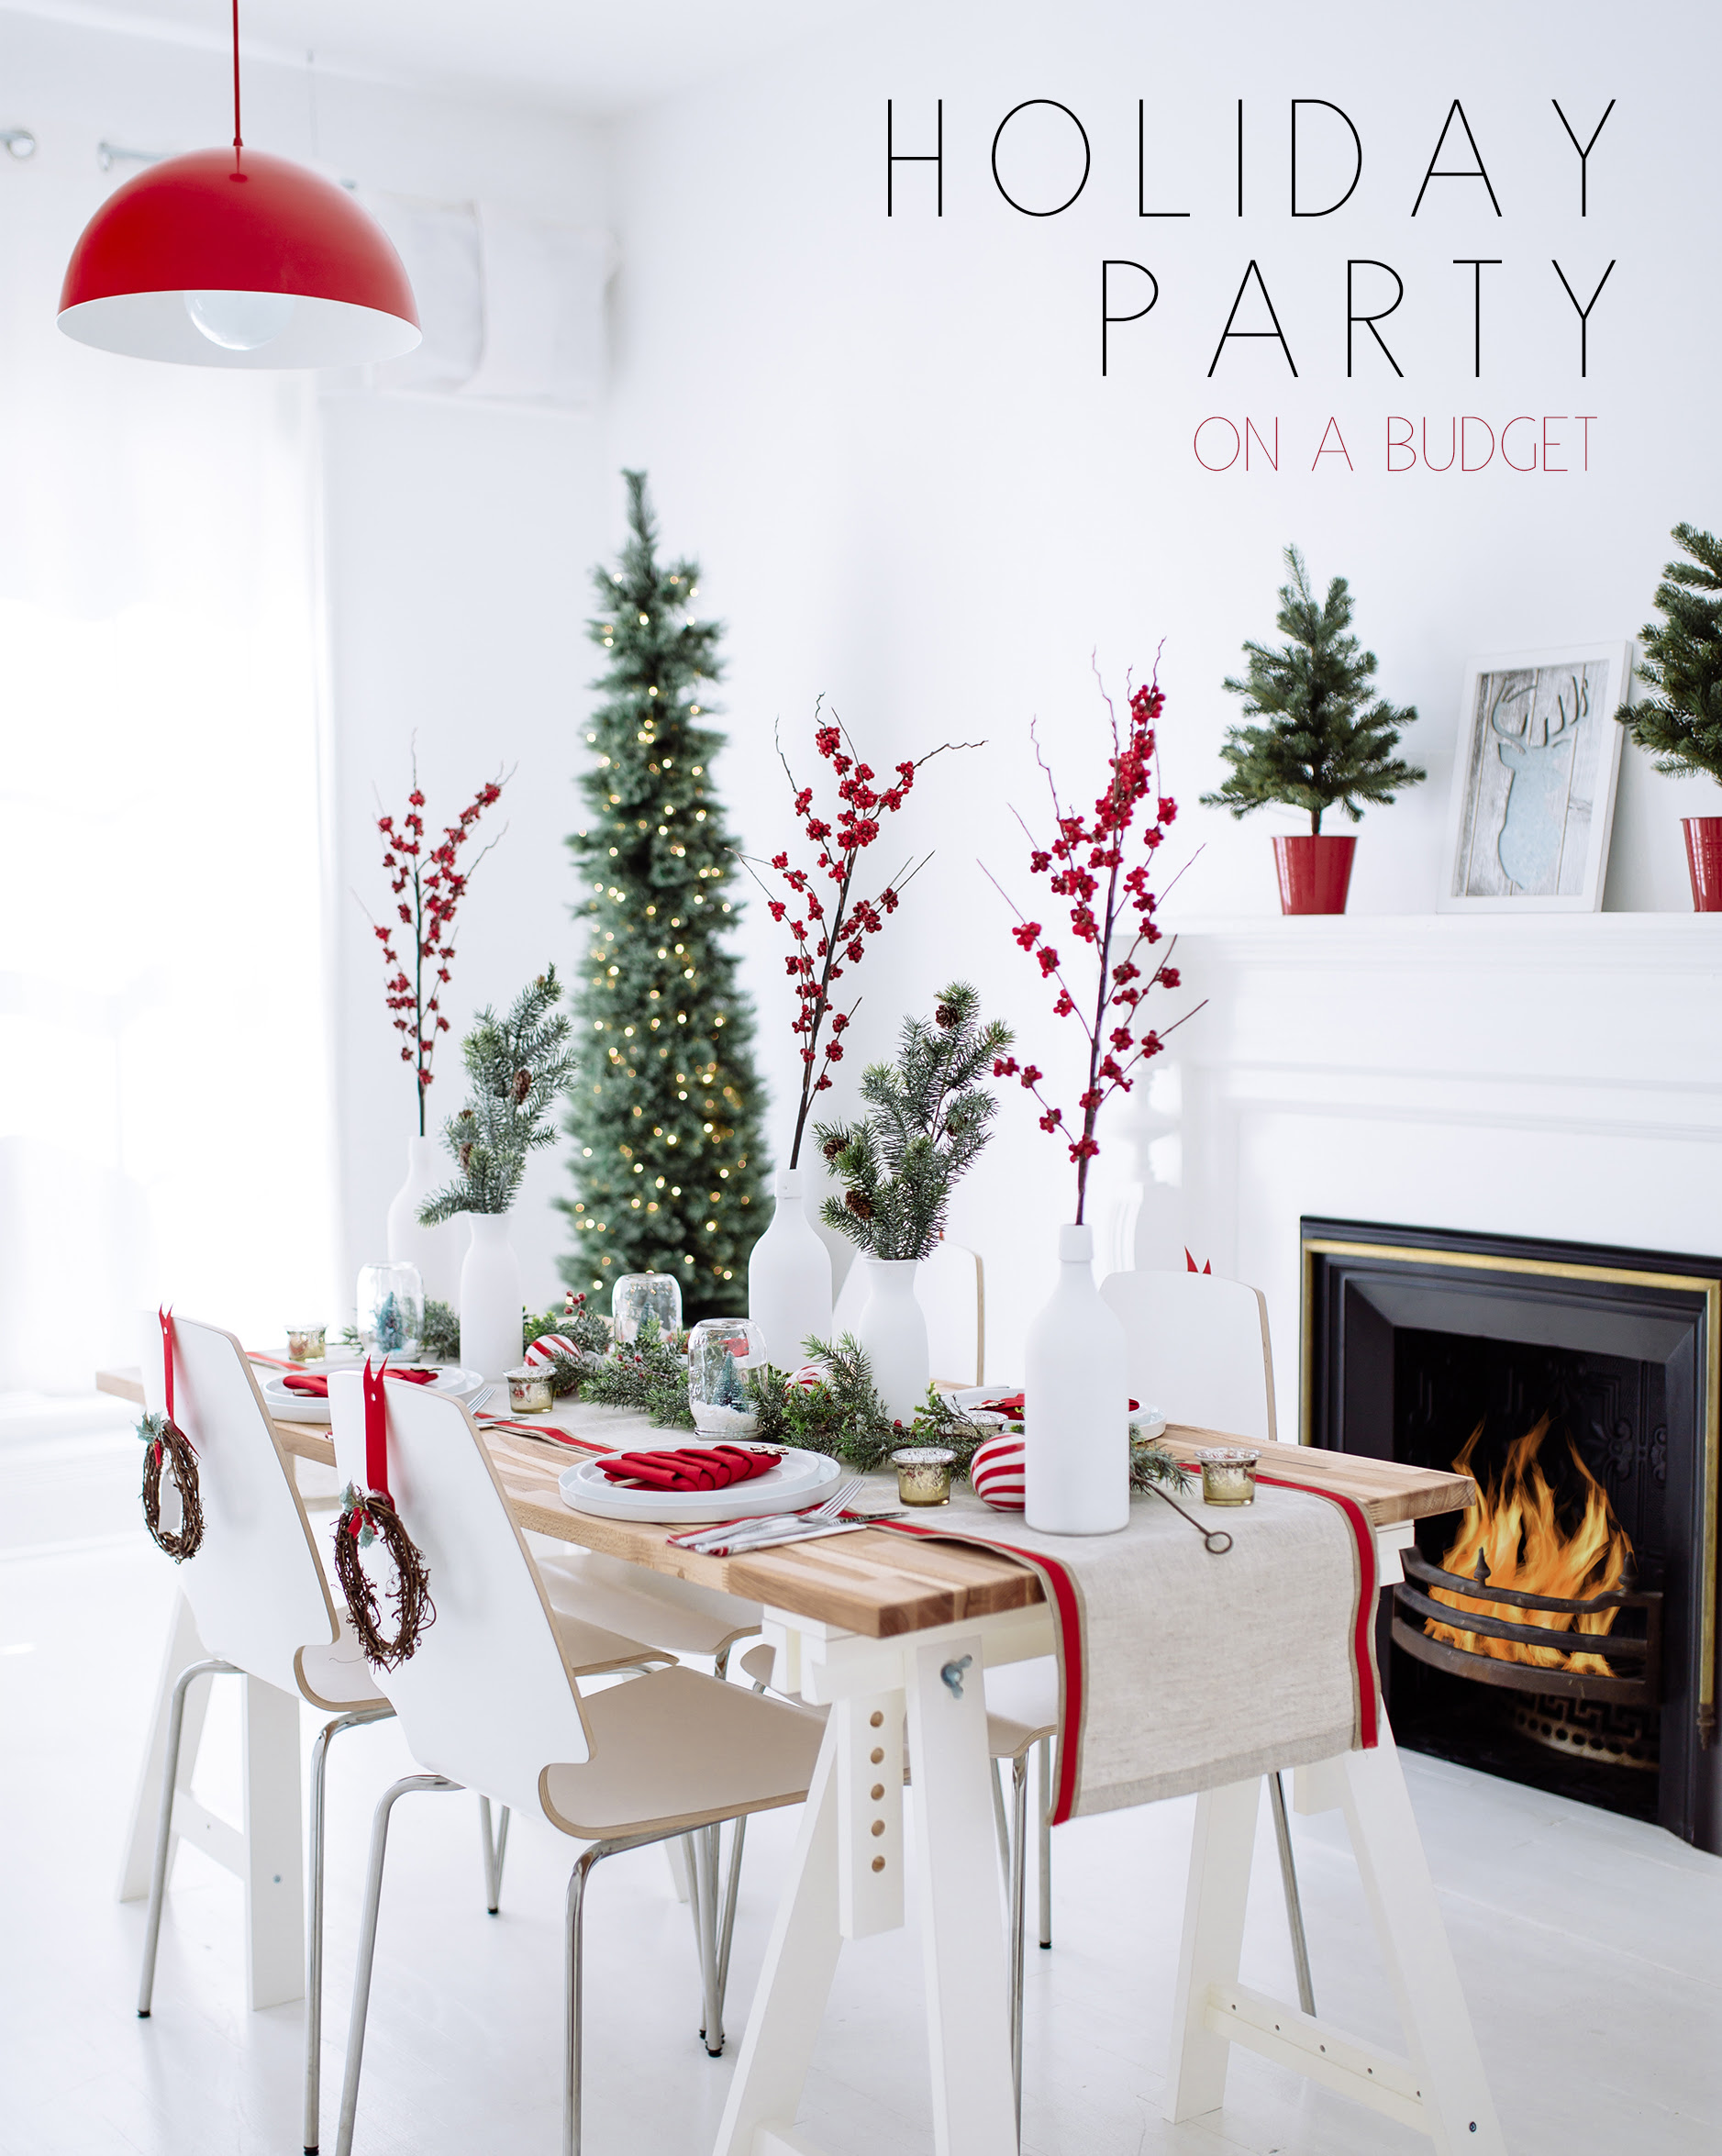 Holiday Party Decor Red White Wreaths Bright Bazaar By Will Taylor